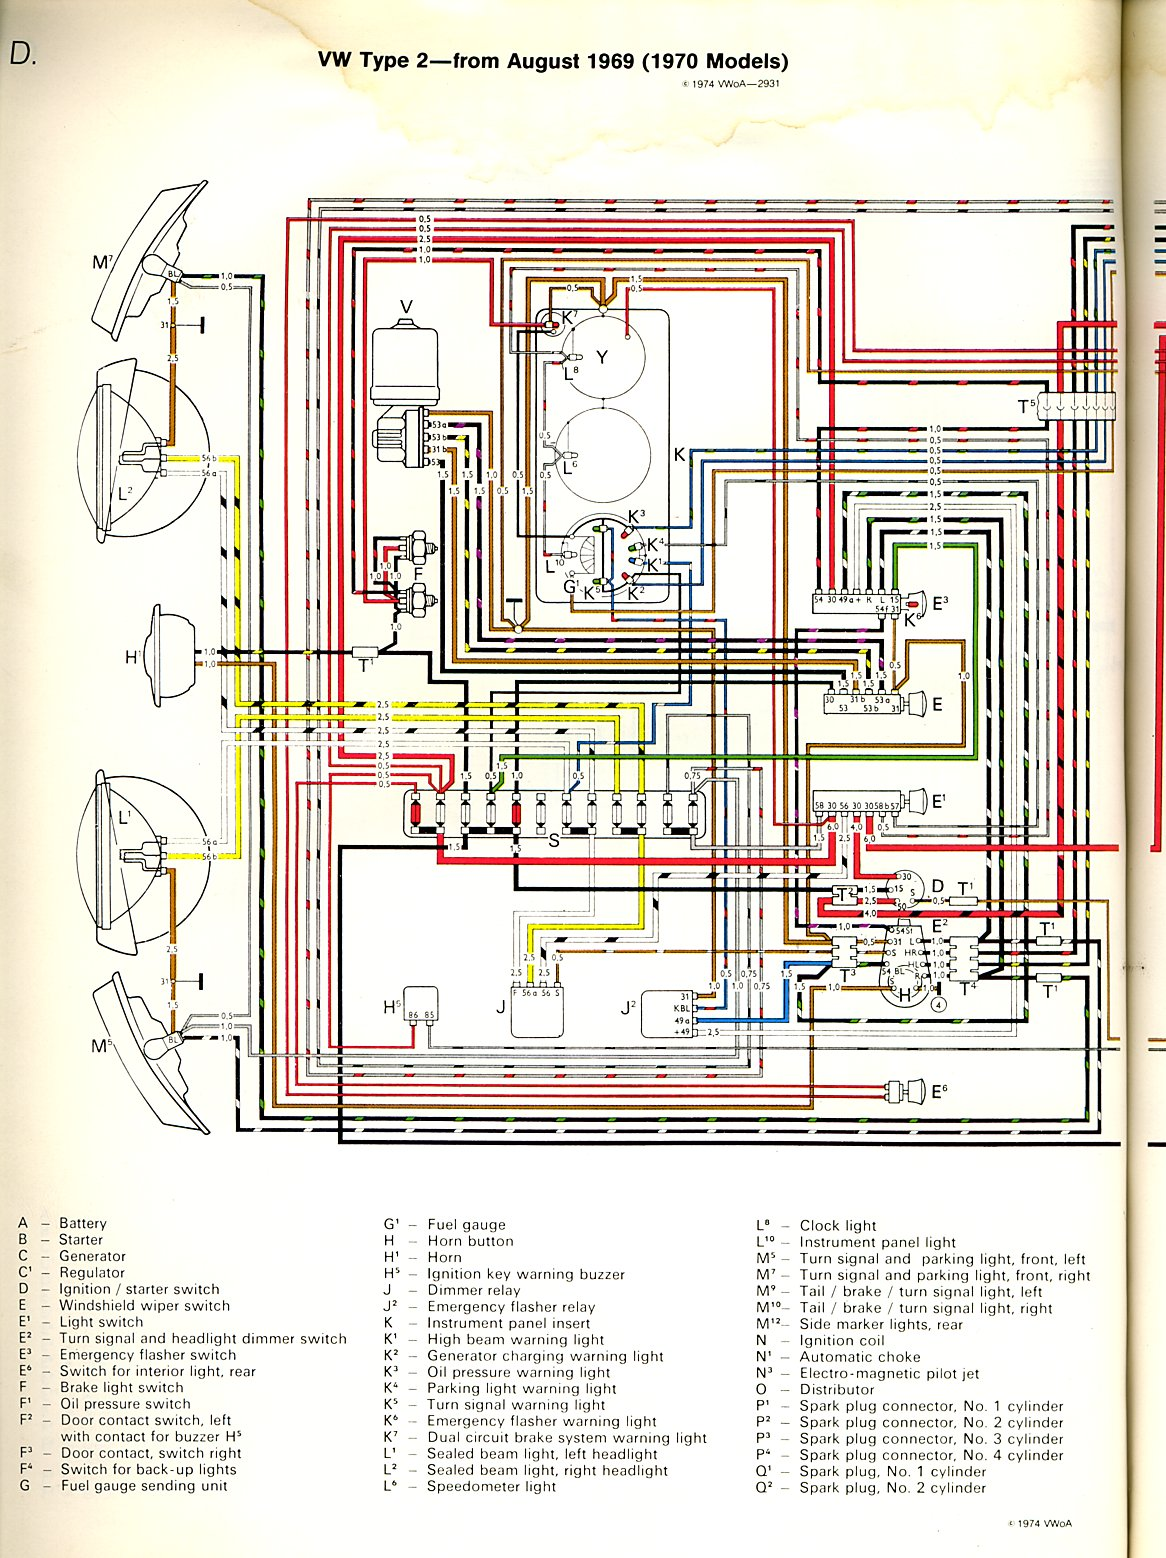 baybus_70a thesamba com type 2 wiring diagrams vw bus wiring diagram at edmiracle.co